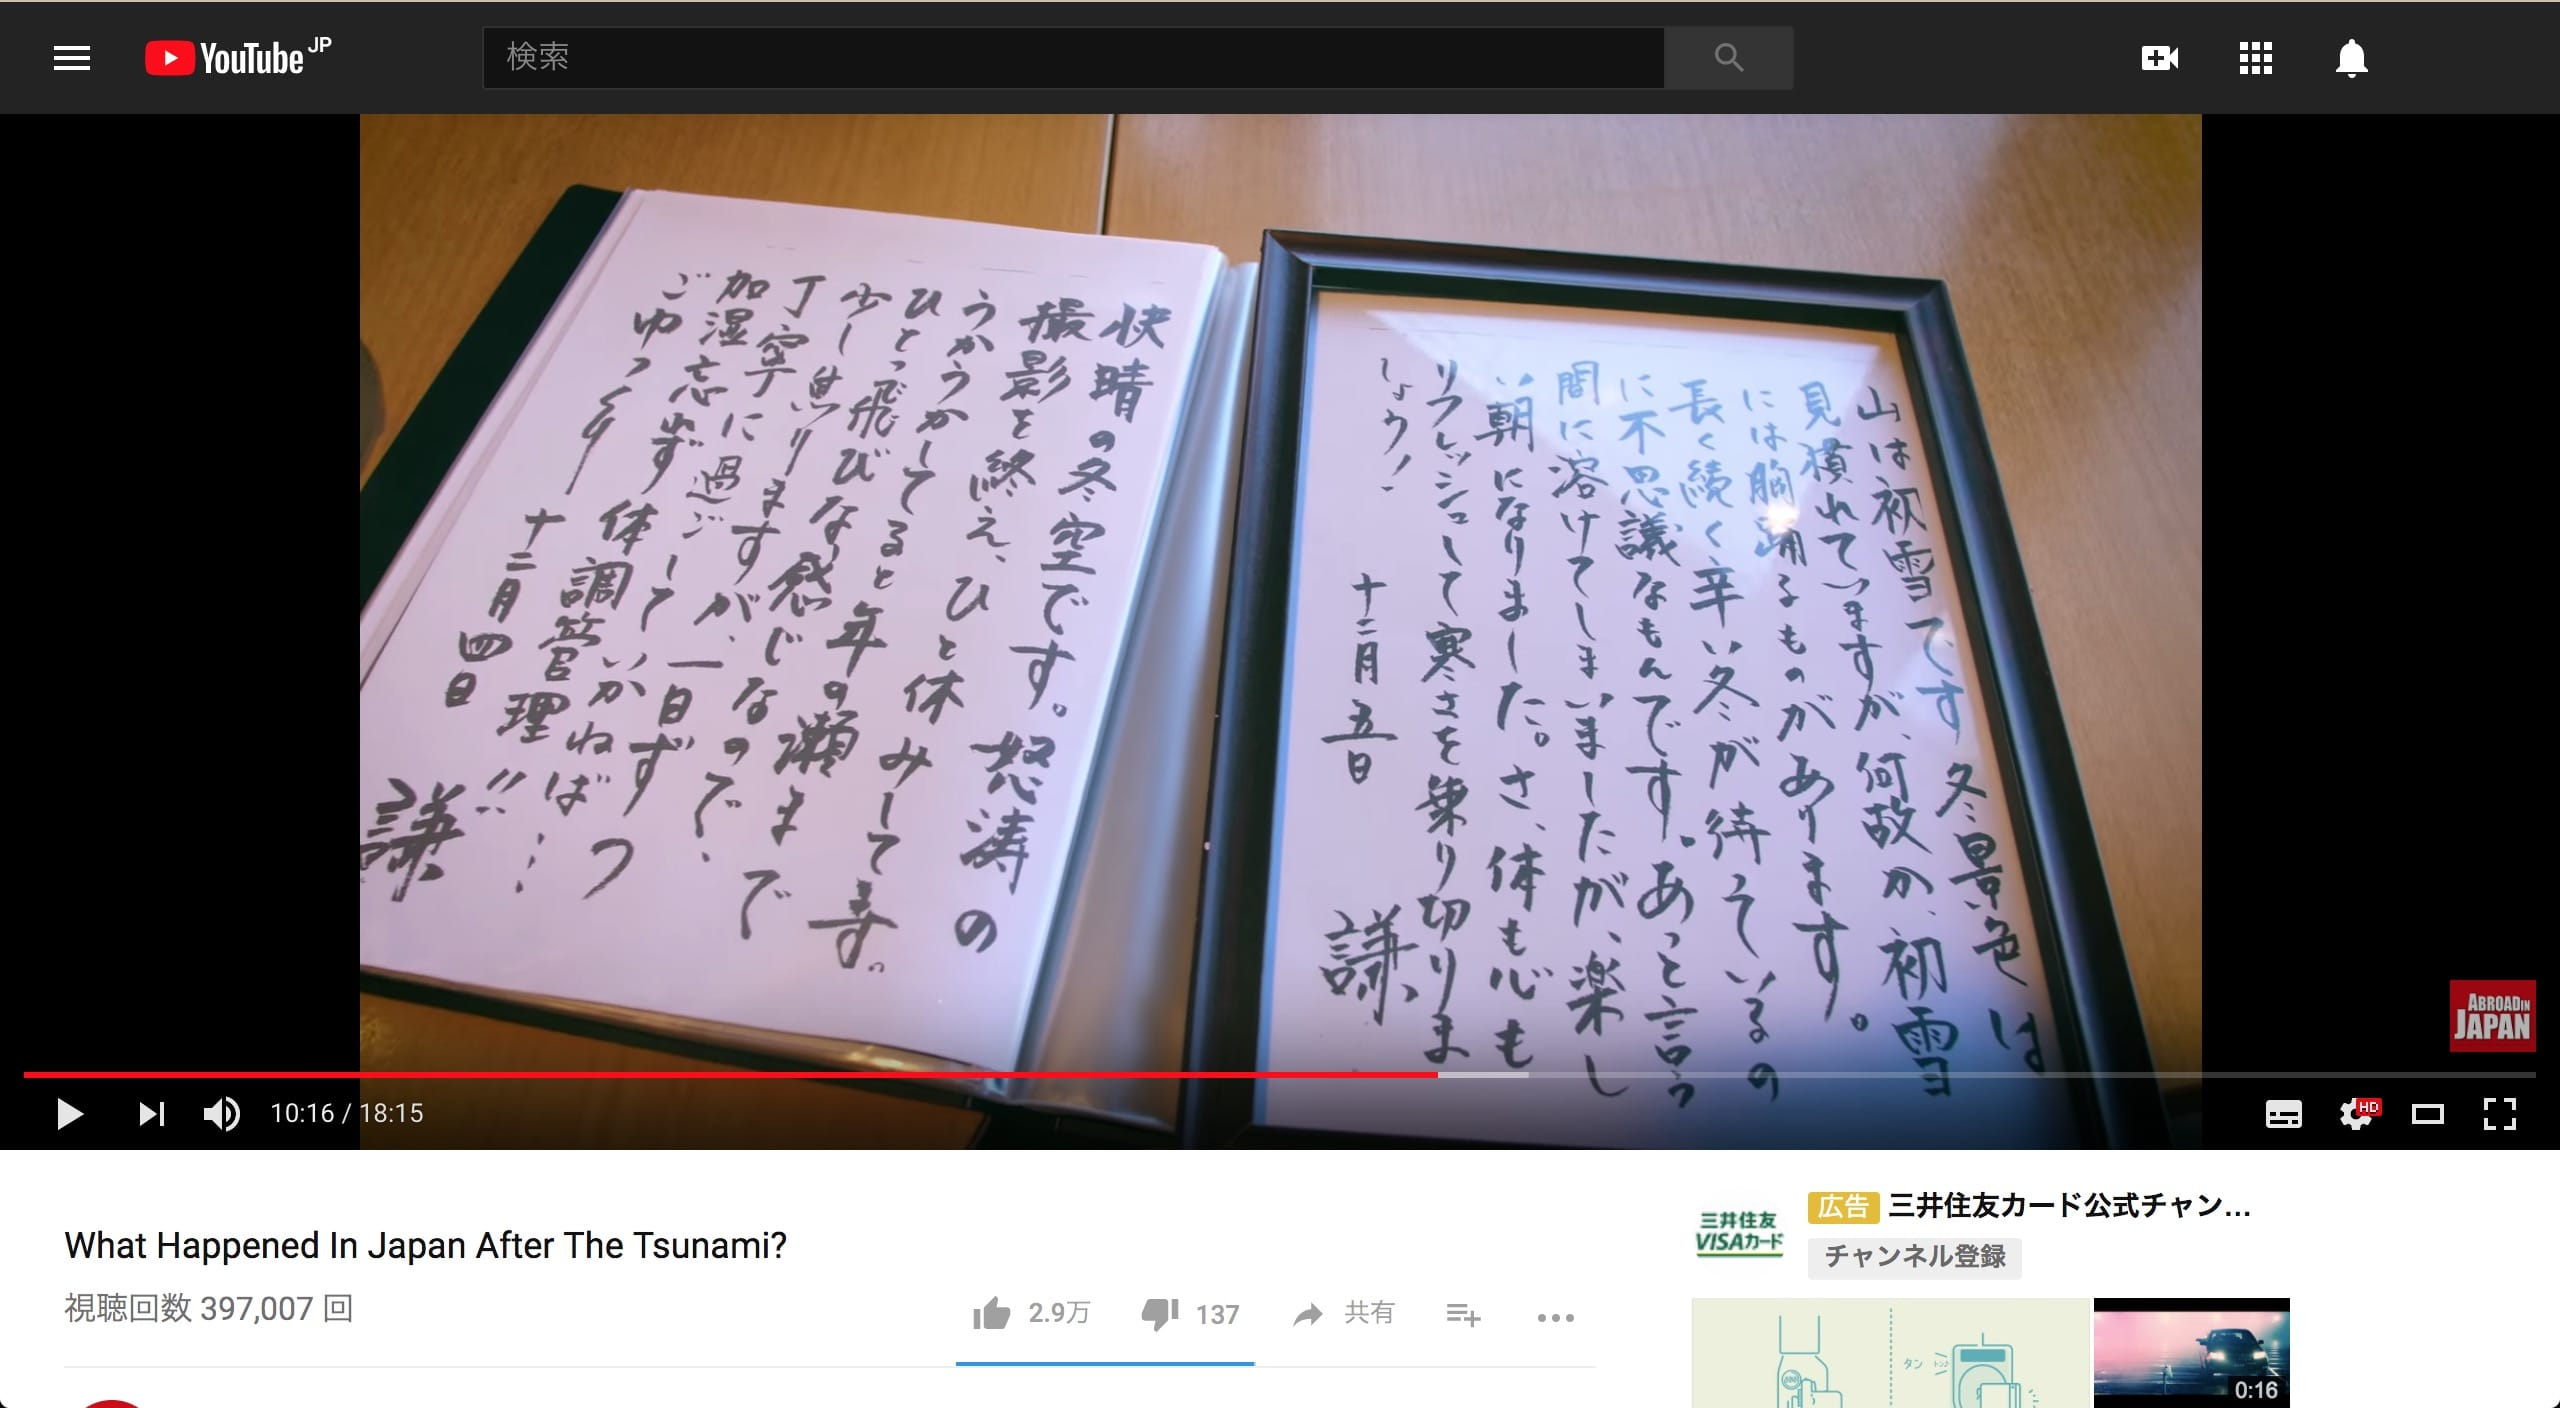 Youtube「What Happened In Japan After The Tsunami?」より